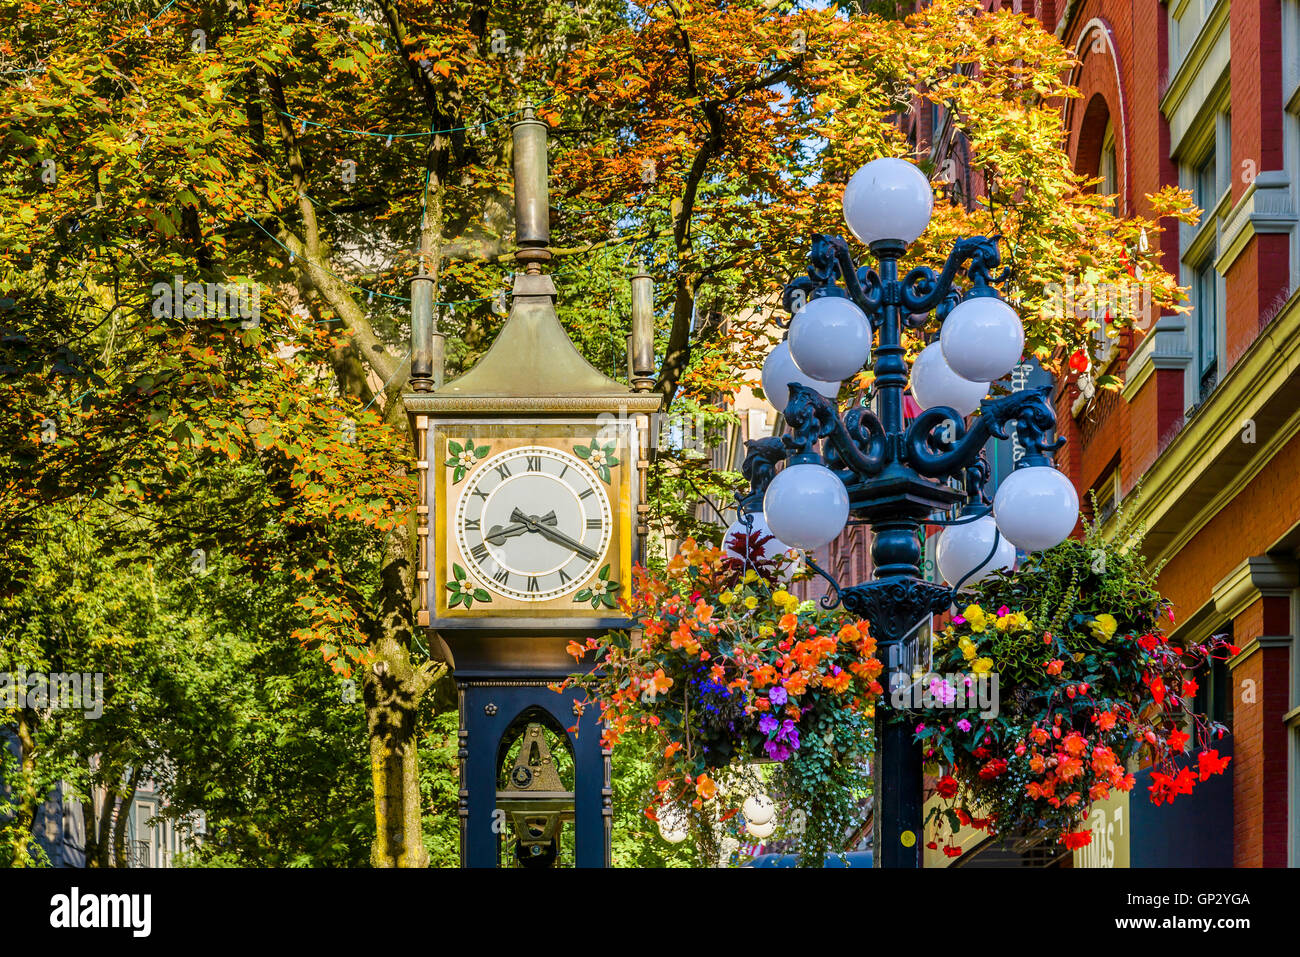 The Steam Clock, Gastown, Vancouver, British Columbia, Canada - Stock Image